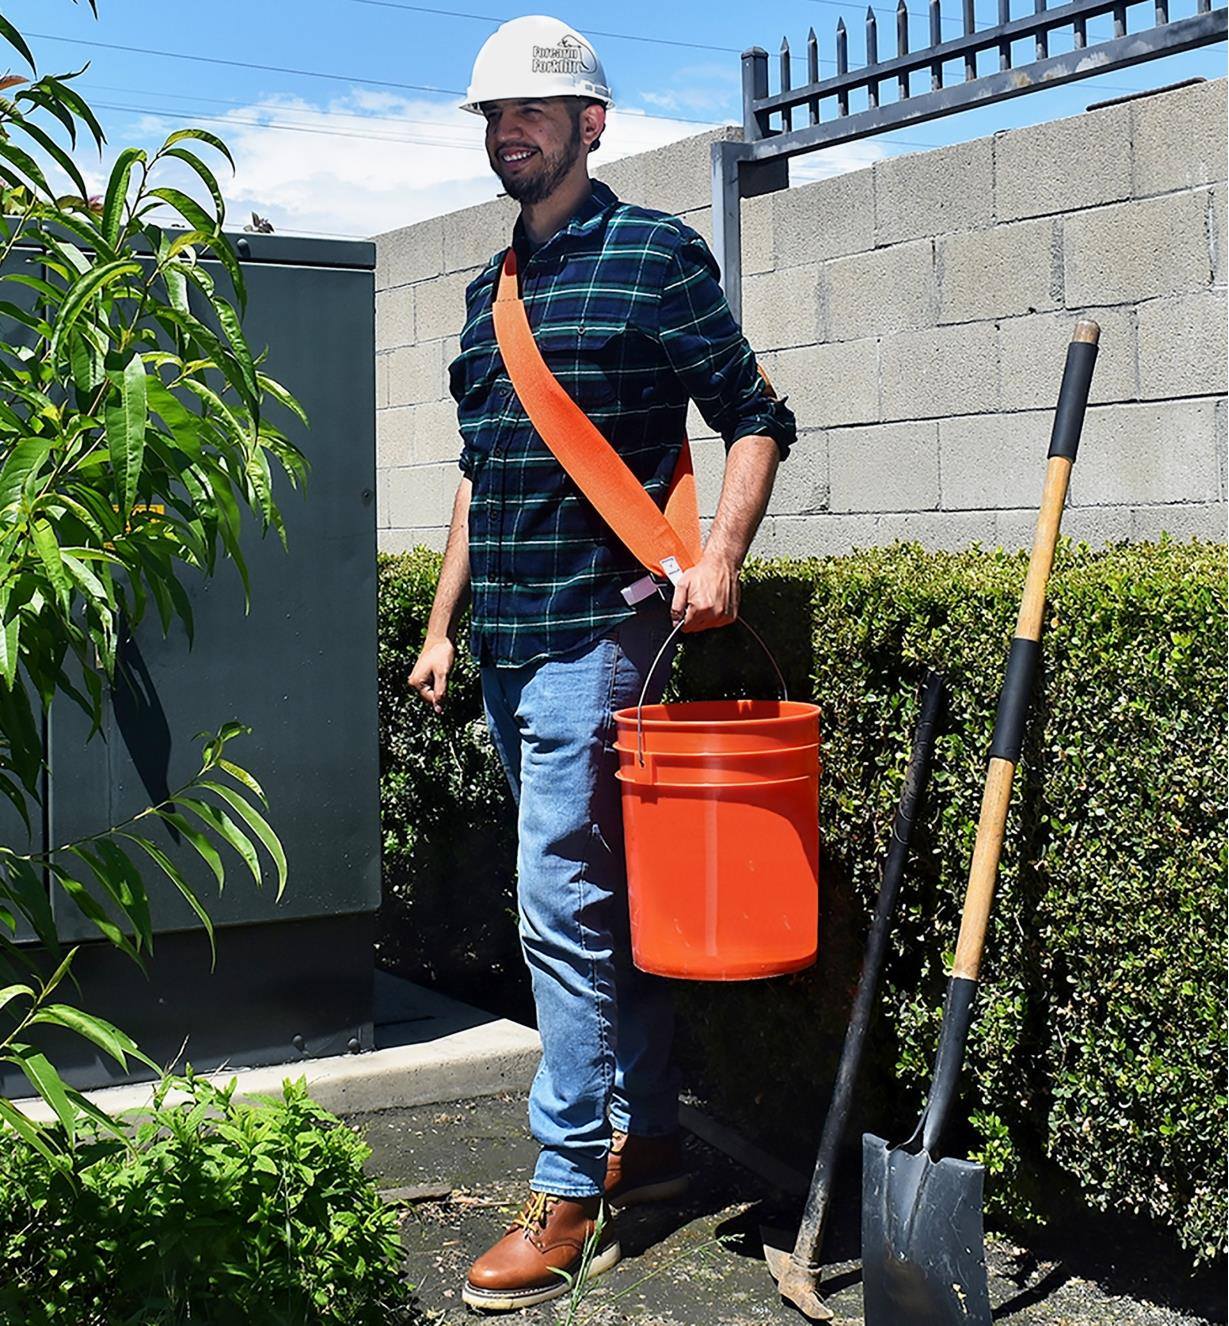 A man uses a Bucket Buddy Sash to help carry a heavy load in a pail